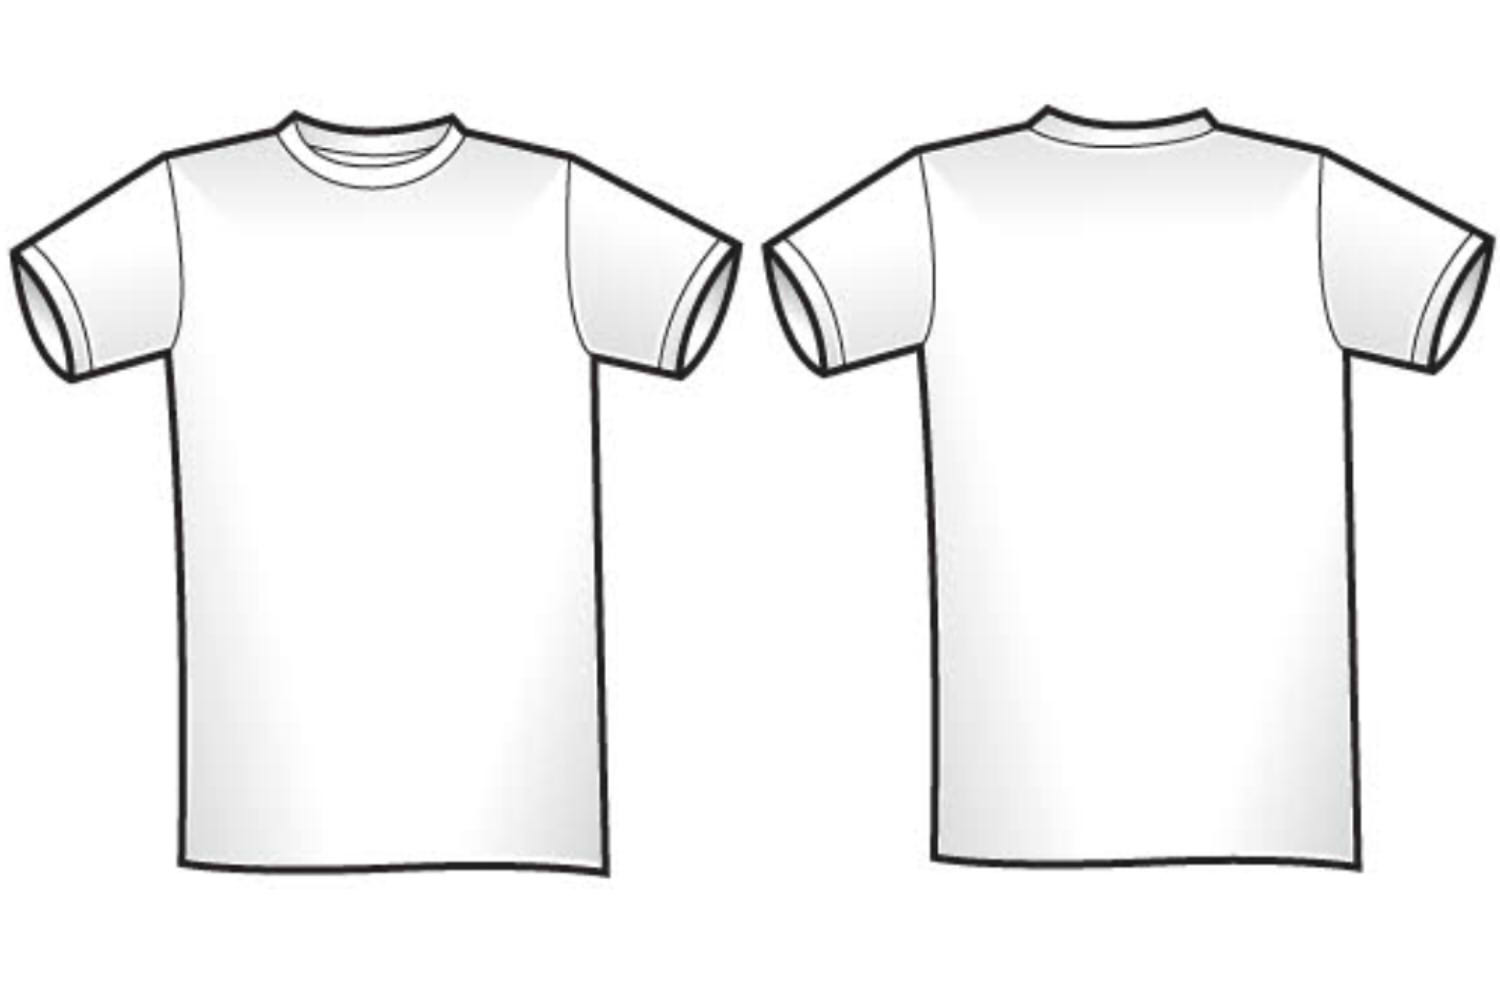 White t shirt for design clipart best for Blank t shirt design template